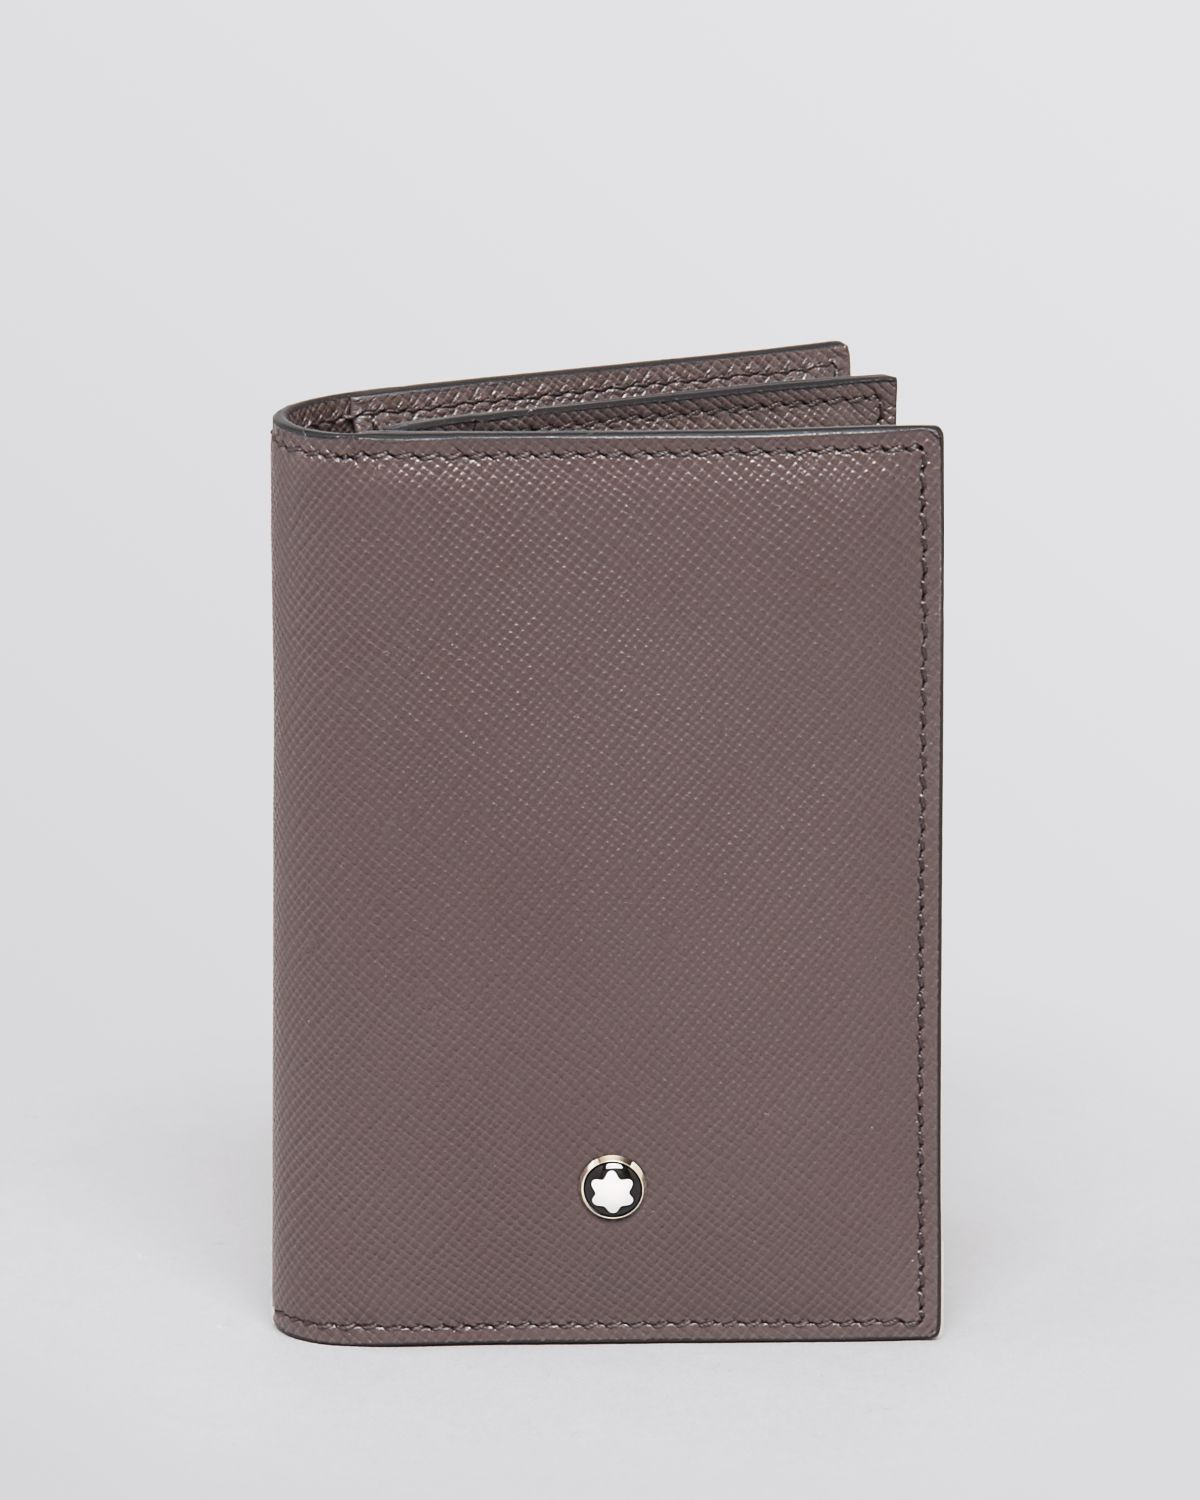 Montblanc Meisterstuck Leather Business Card Holder in